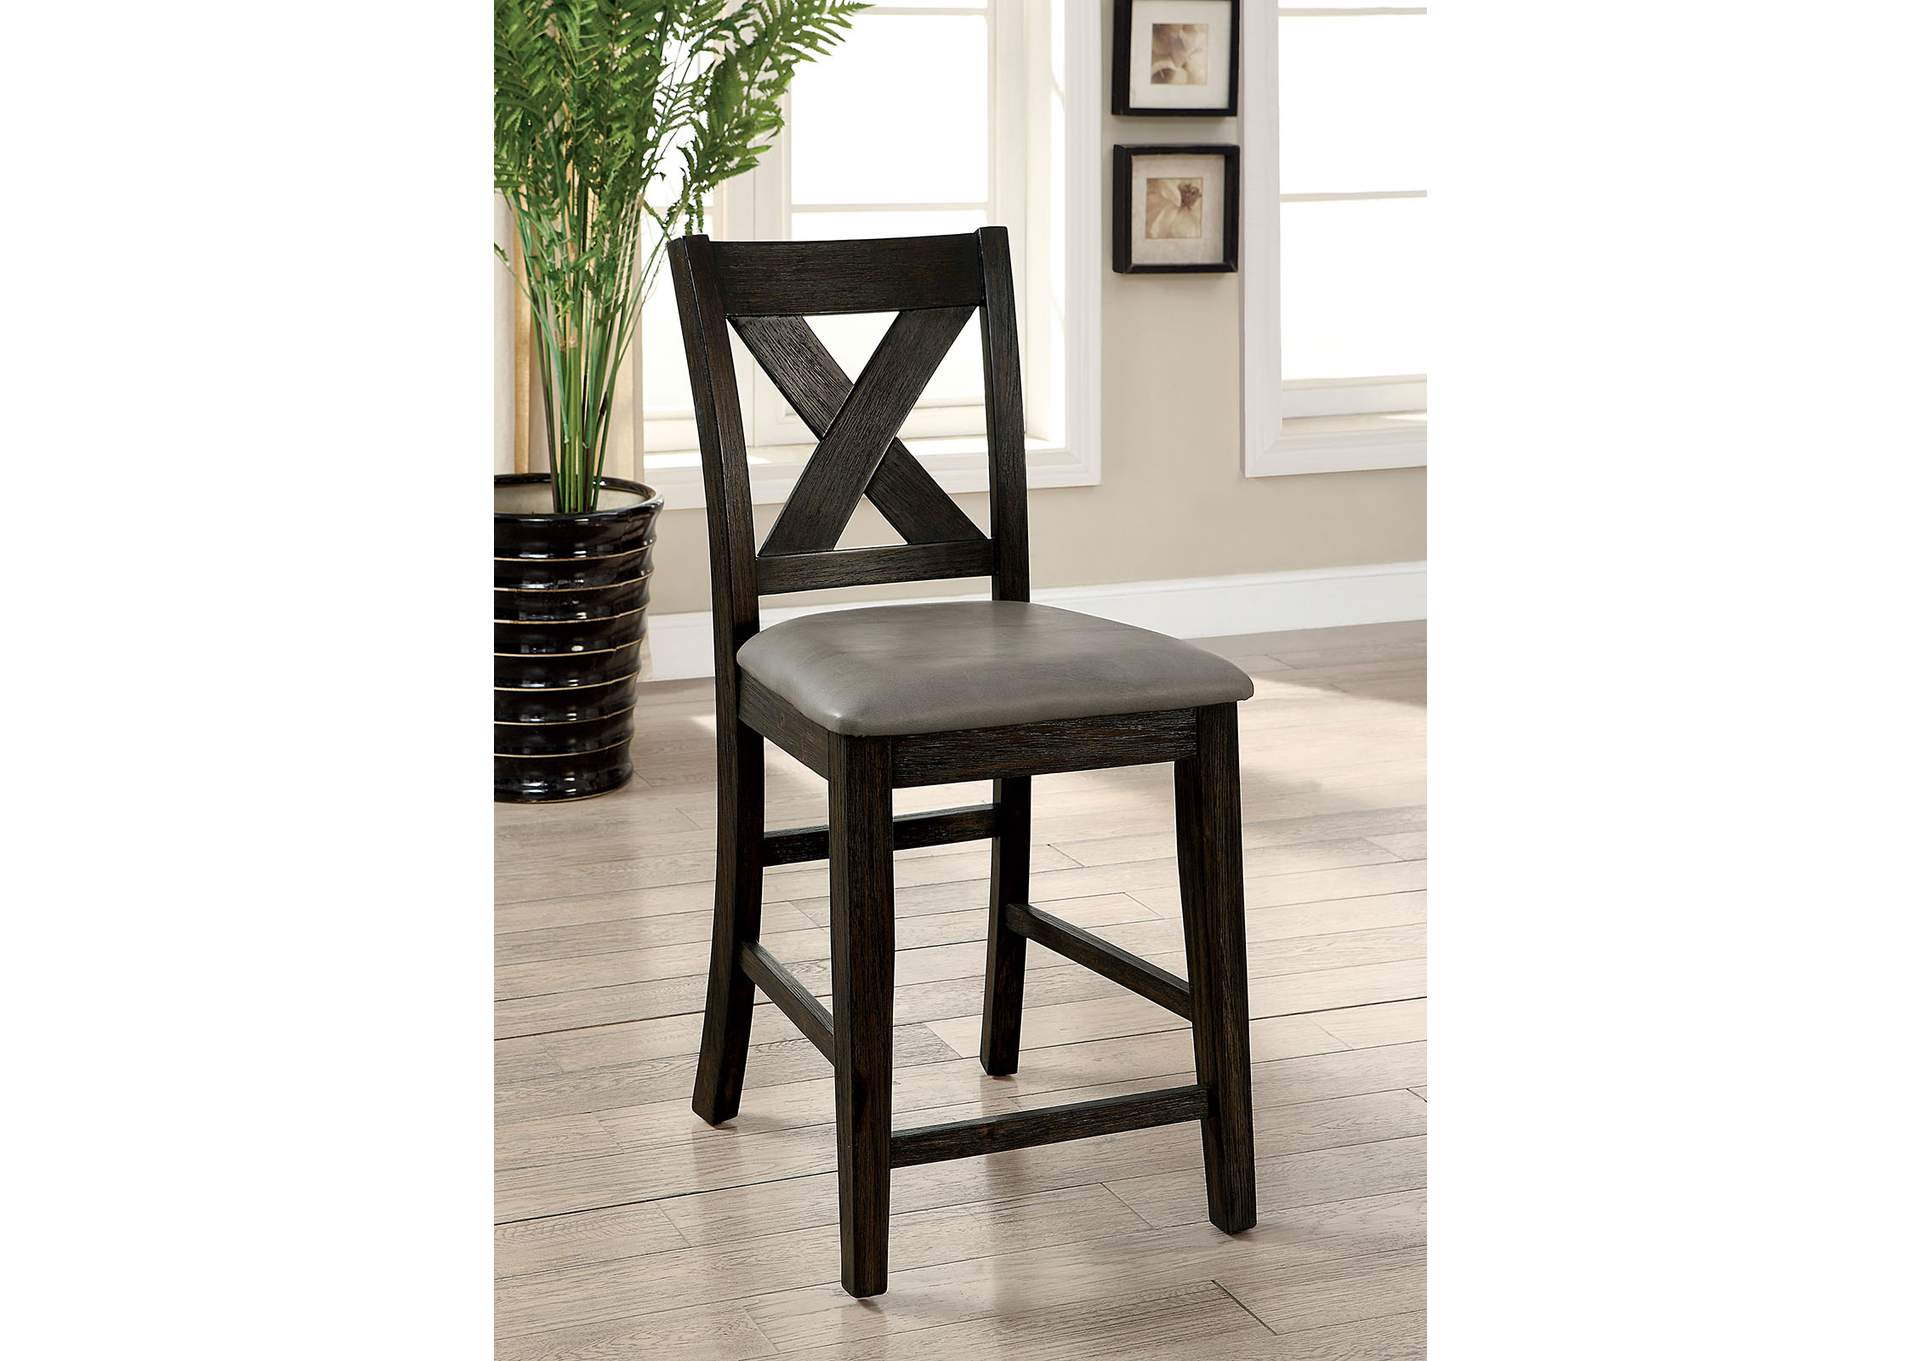 Lana Dark Walnut Counter Height Chair (Set of 2),Furniture of America